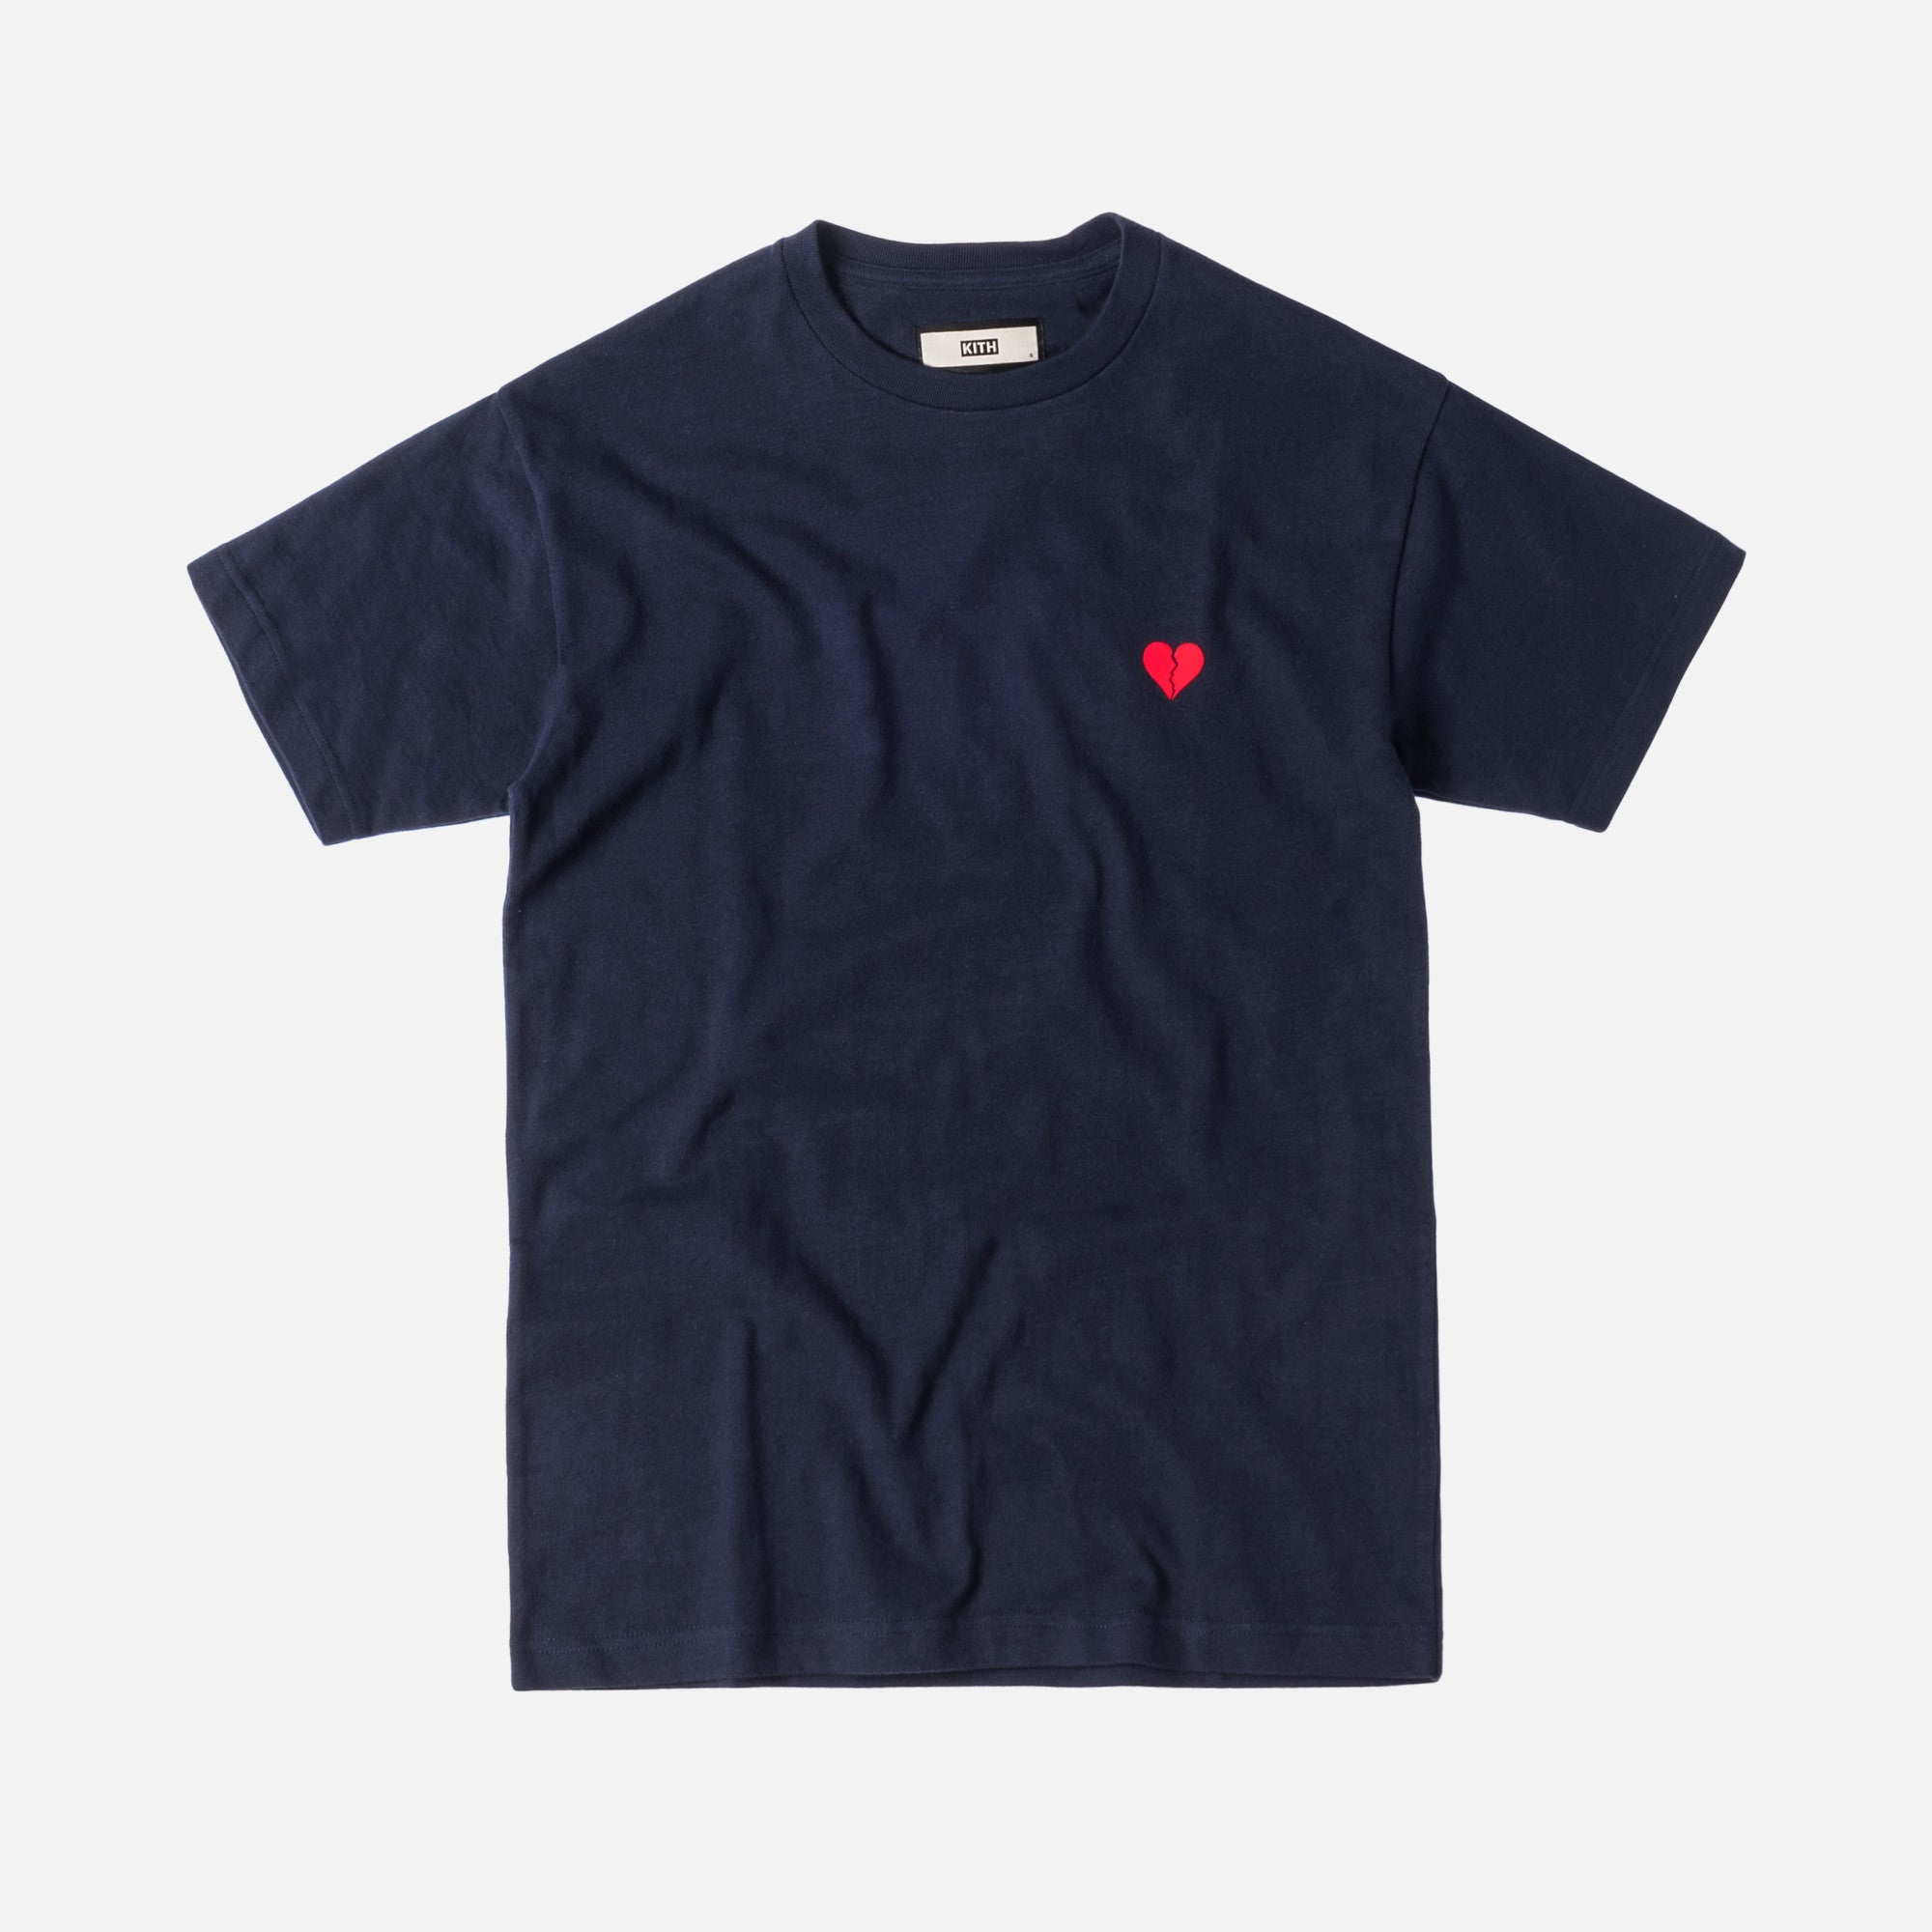 Kith Broken Hearts Tee - Navy